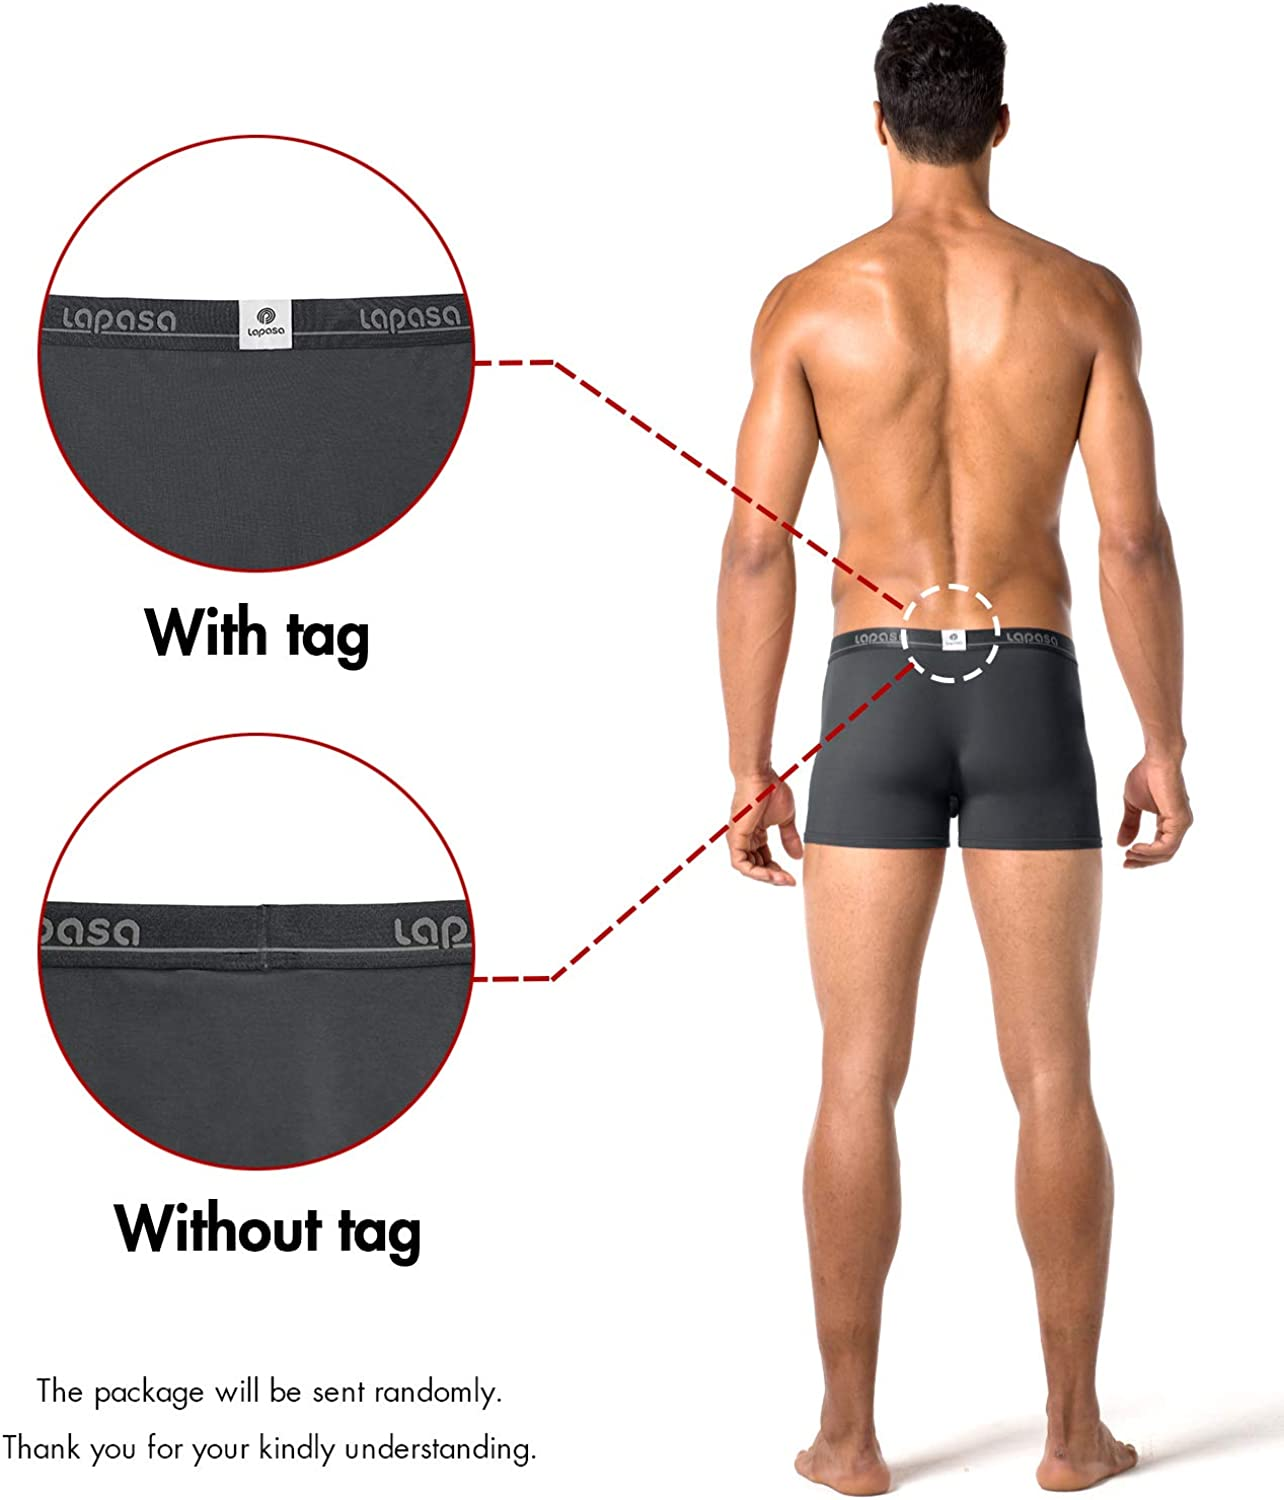 LAPASA Mens 4 Pack Boxers Briefs Micro Modal Boxers Underwear /& 3 Pack Mens Fitness Running Underwear Boxer Shorts Nylon Polyester Mixed Mens Trunks M02 M14